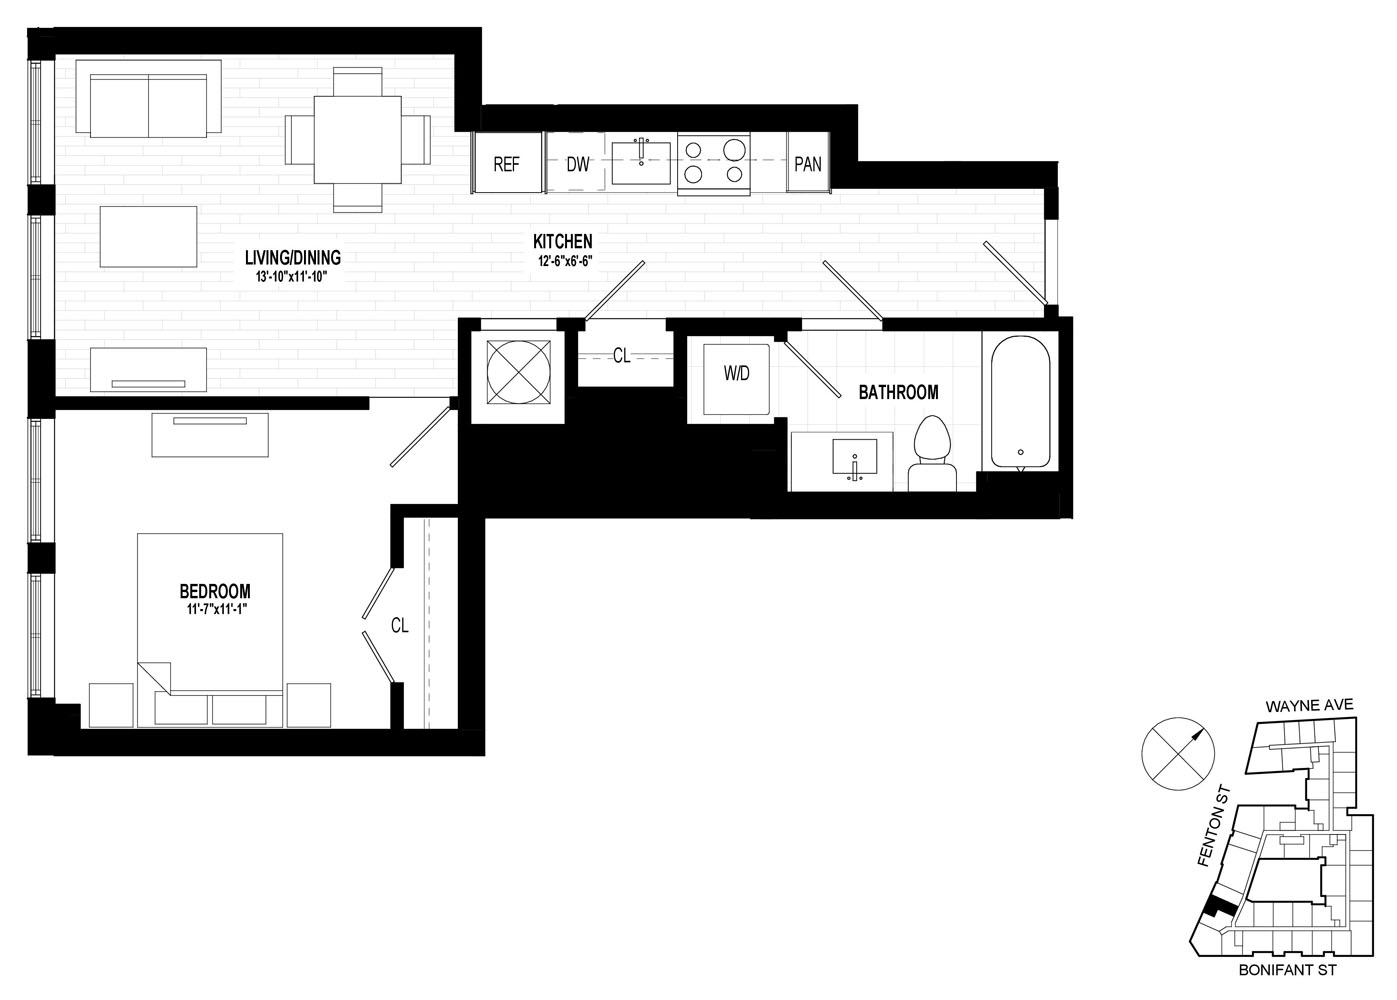 P0578887 761aa03 central a09 593 2 floorplan